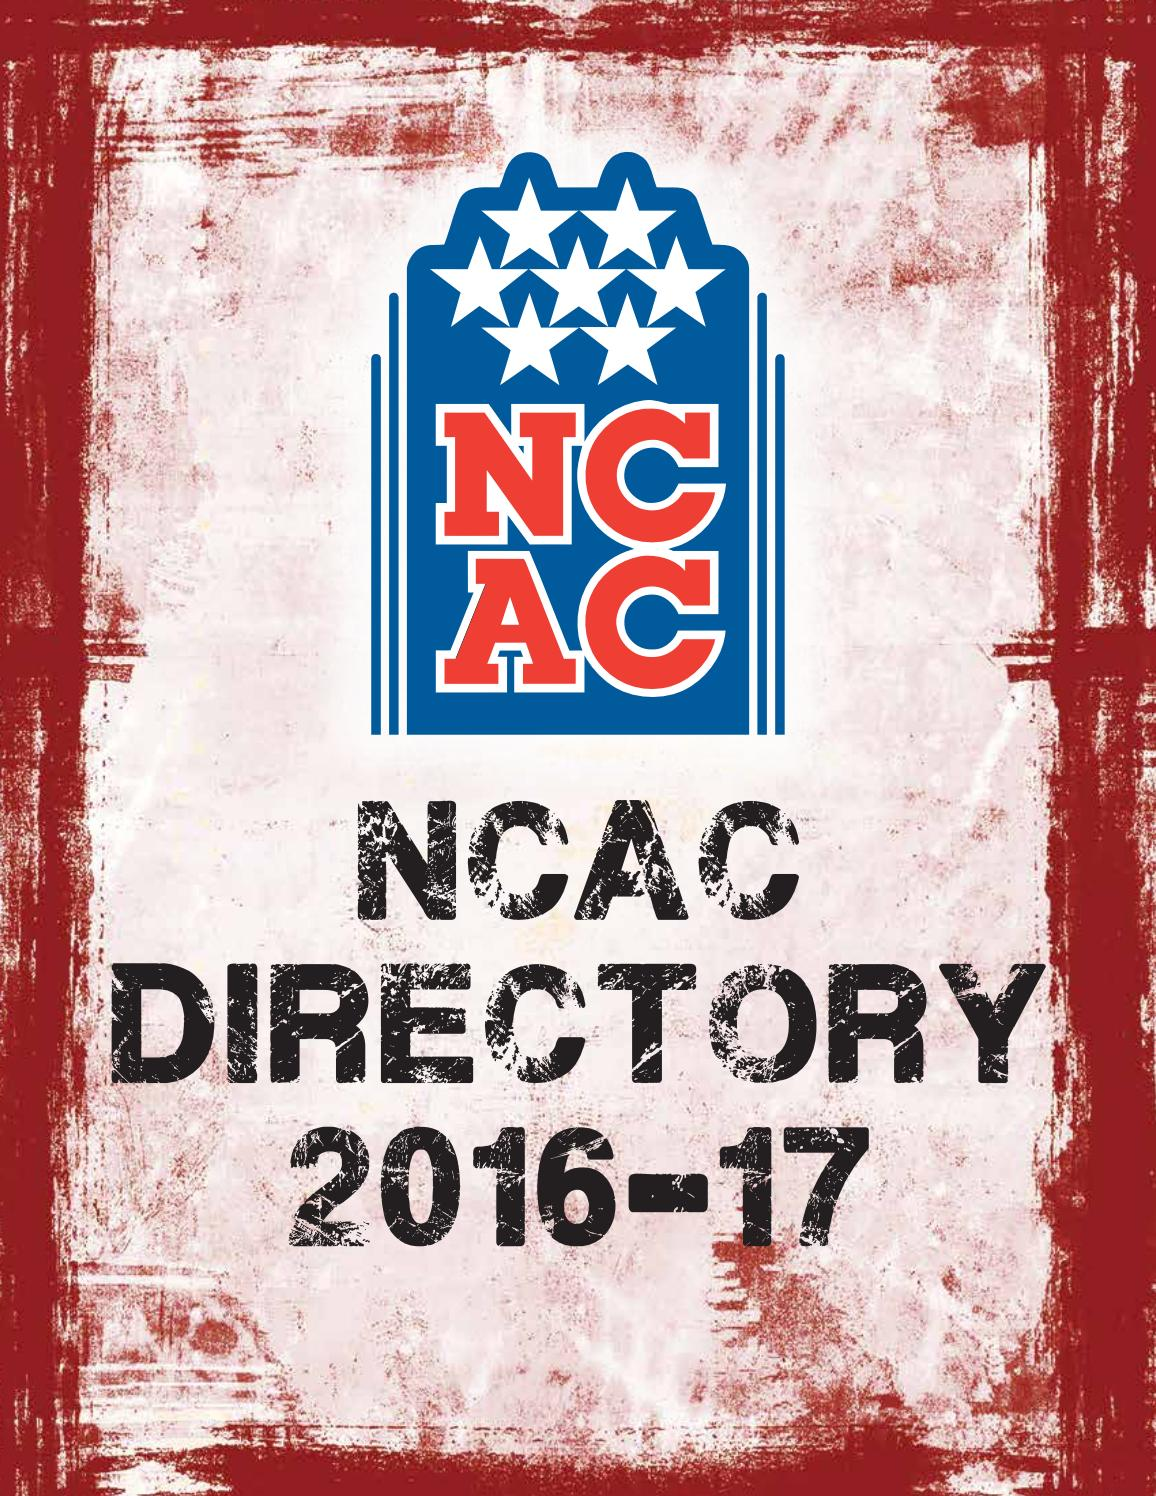 Oberlin Academic Calendar 2022 23.2016 17 Ncac Directory By North Coast Athletic Conference Issuu